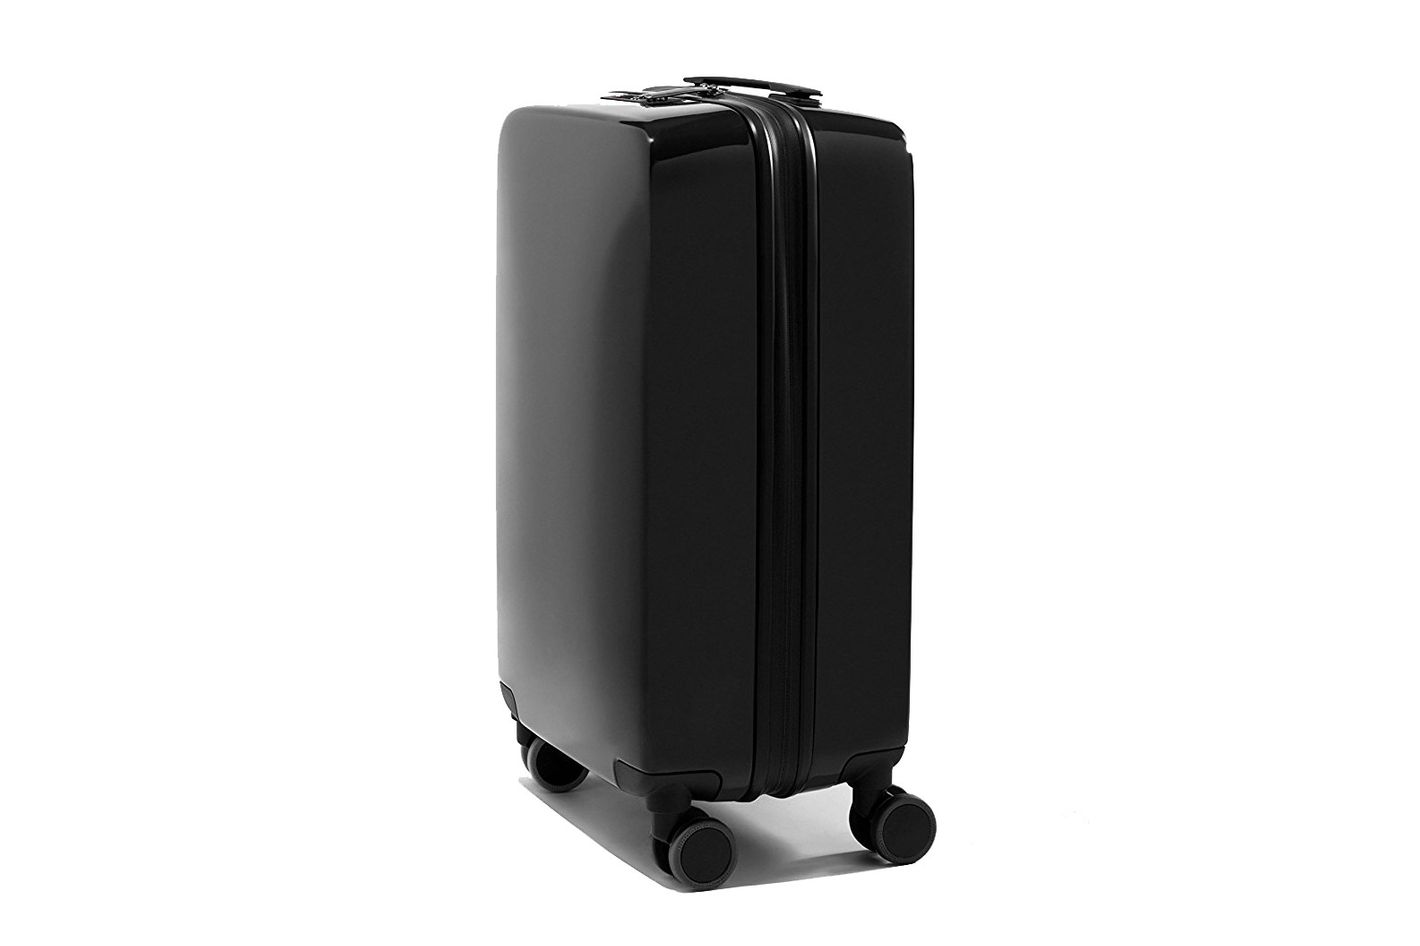 Raden A22 Carry-on Luggage